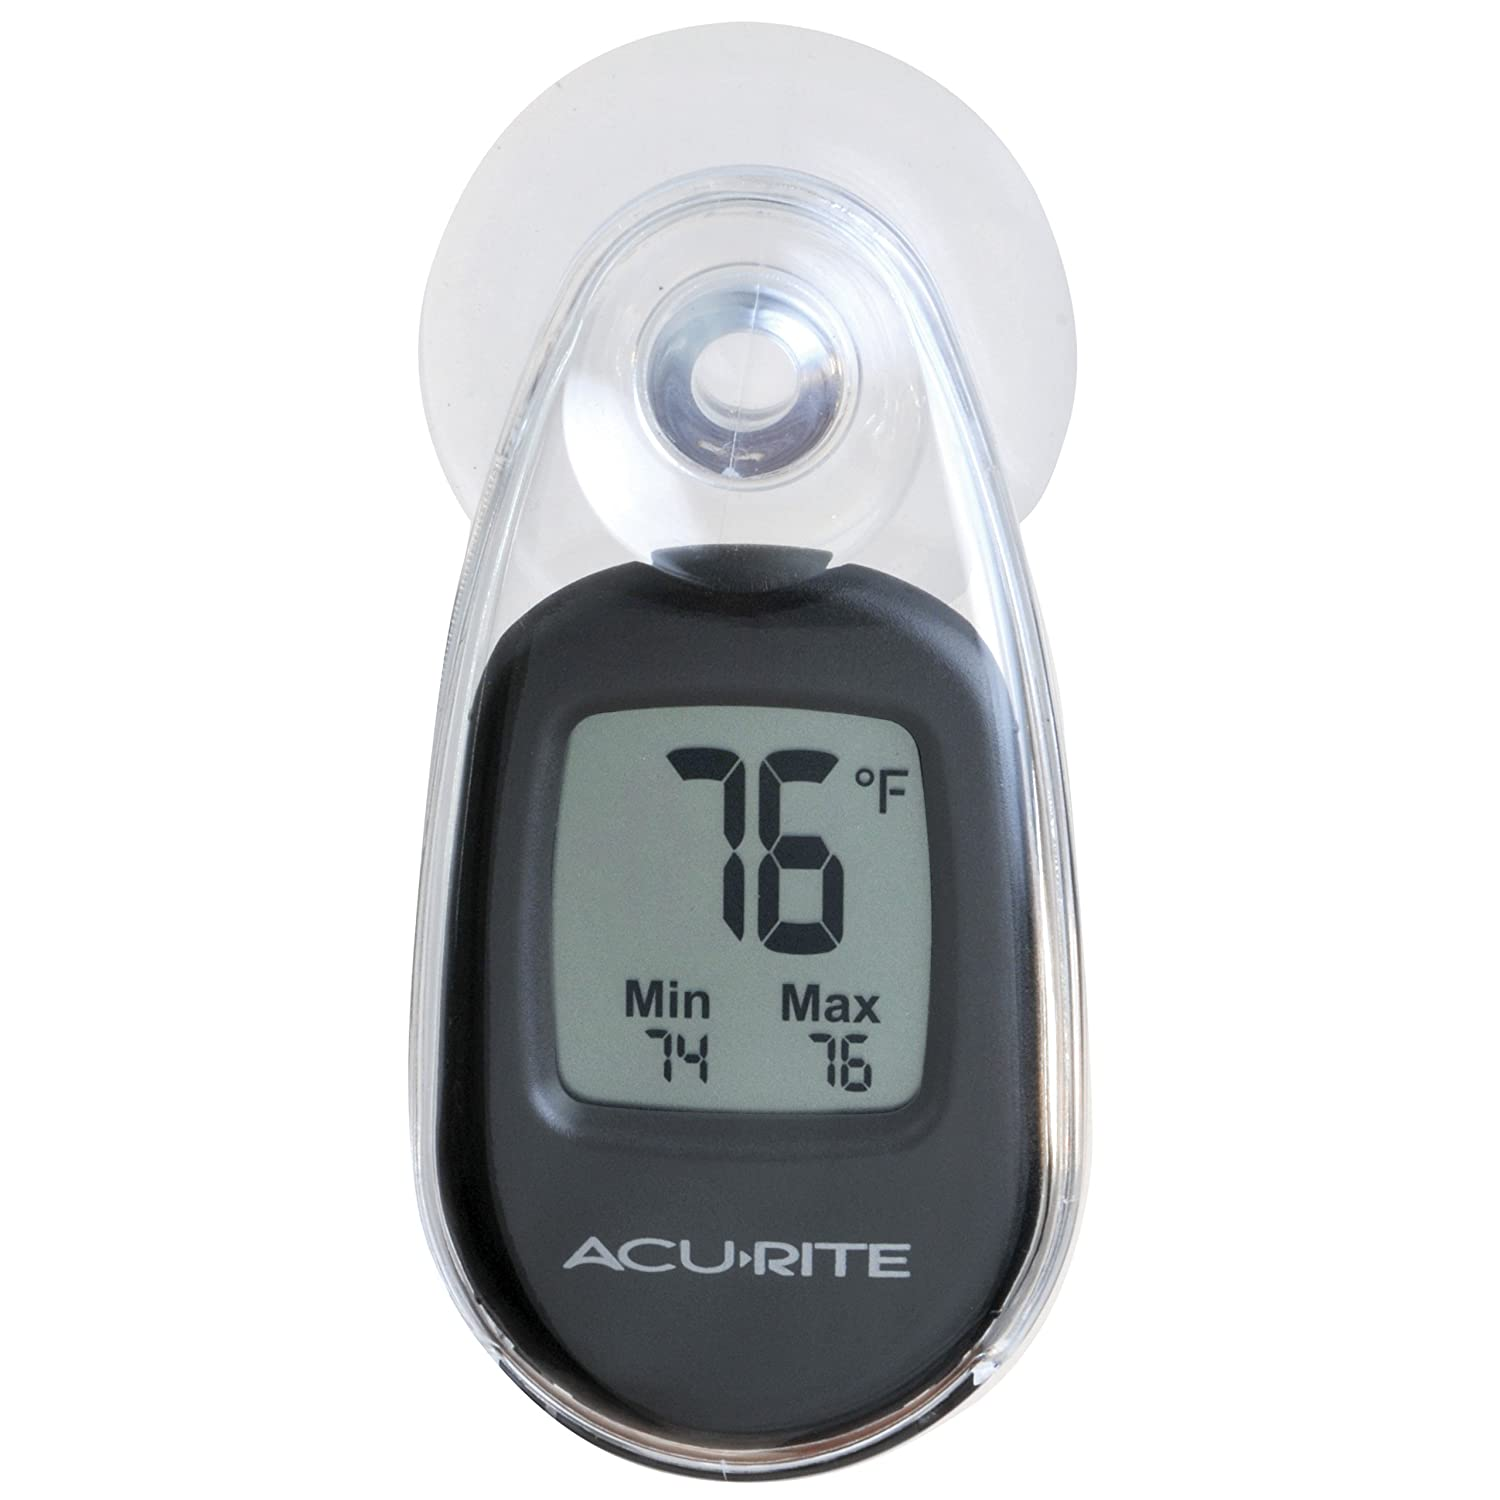 White Garden Ornaments AcuRite Suction Cup Thermometer